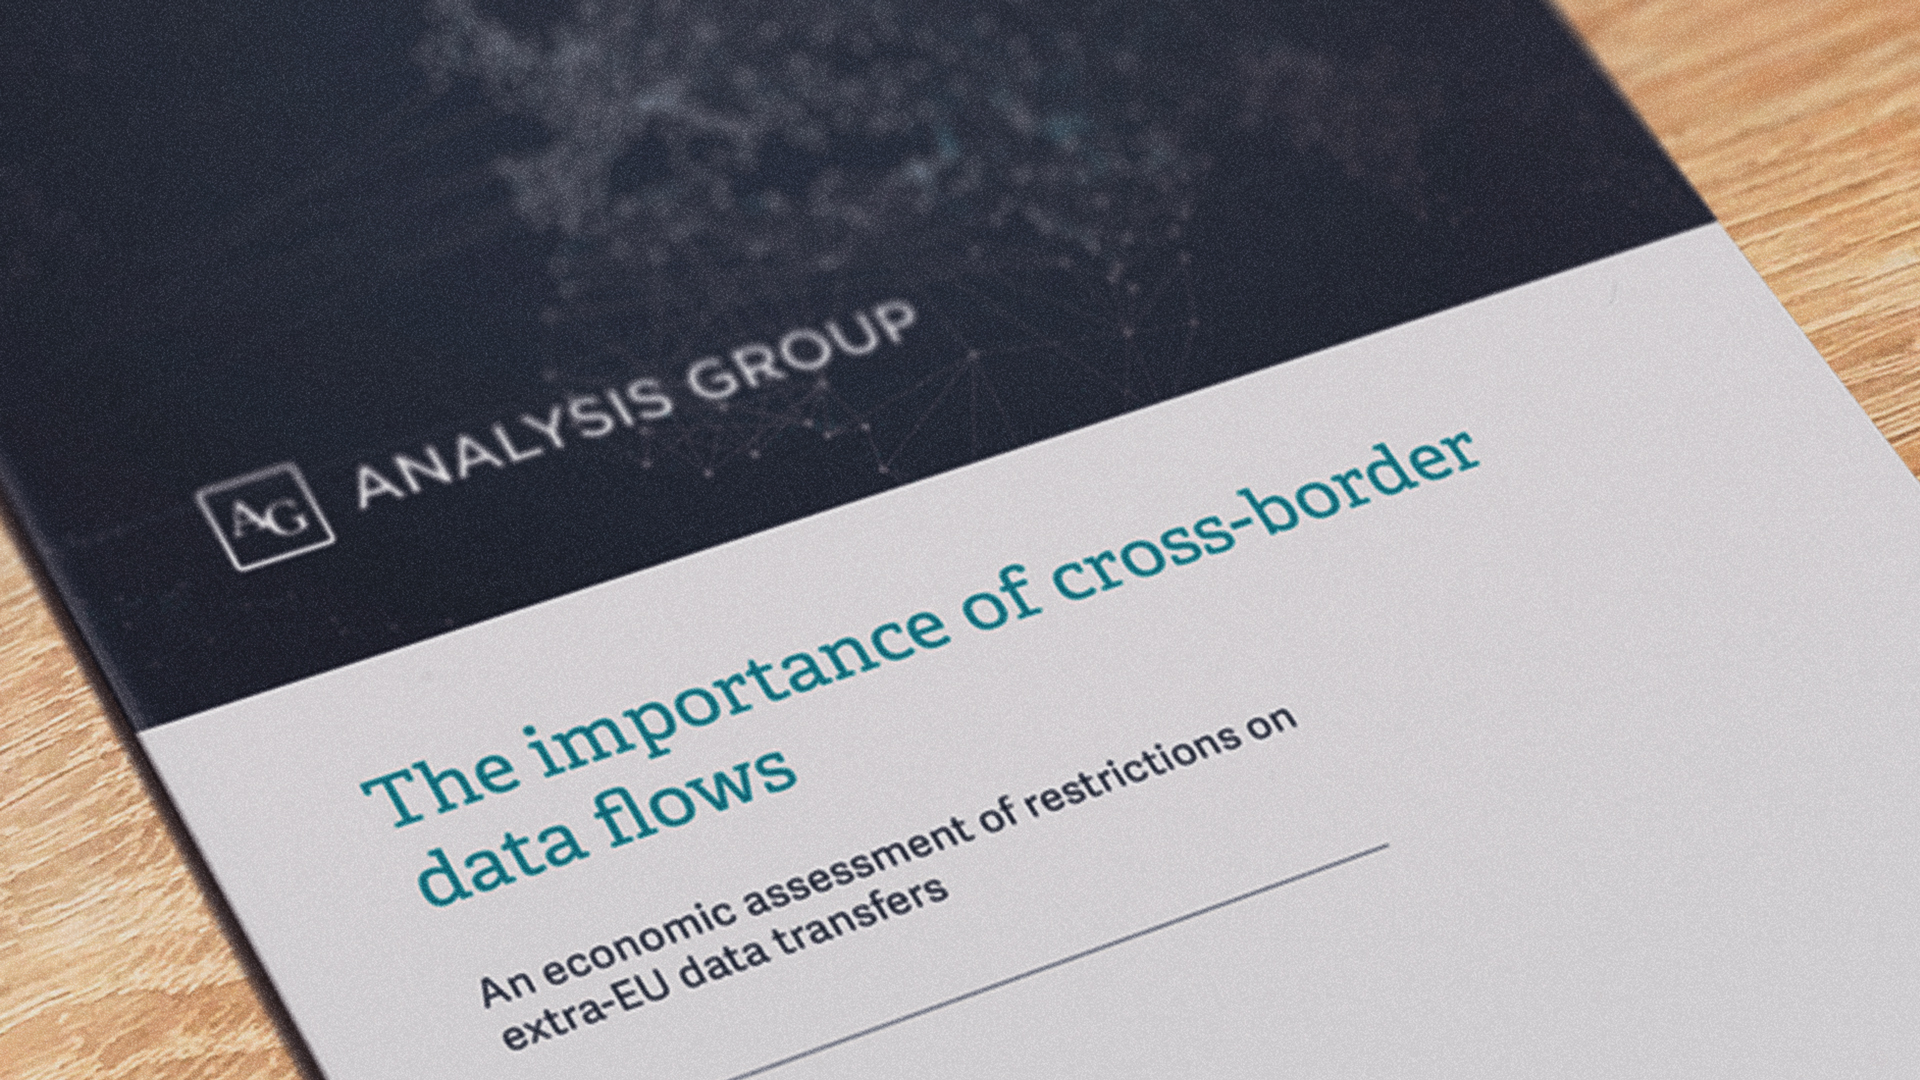 Photo of Cross-Border Data Flows Report by Analysis Group